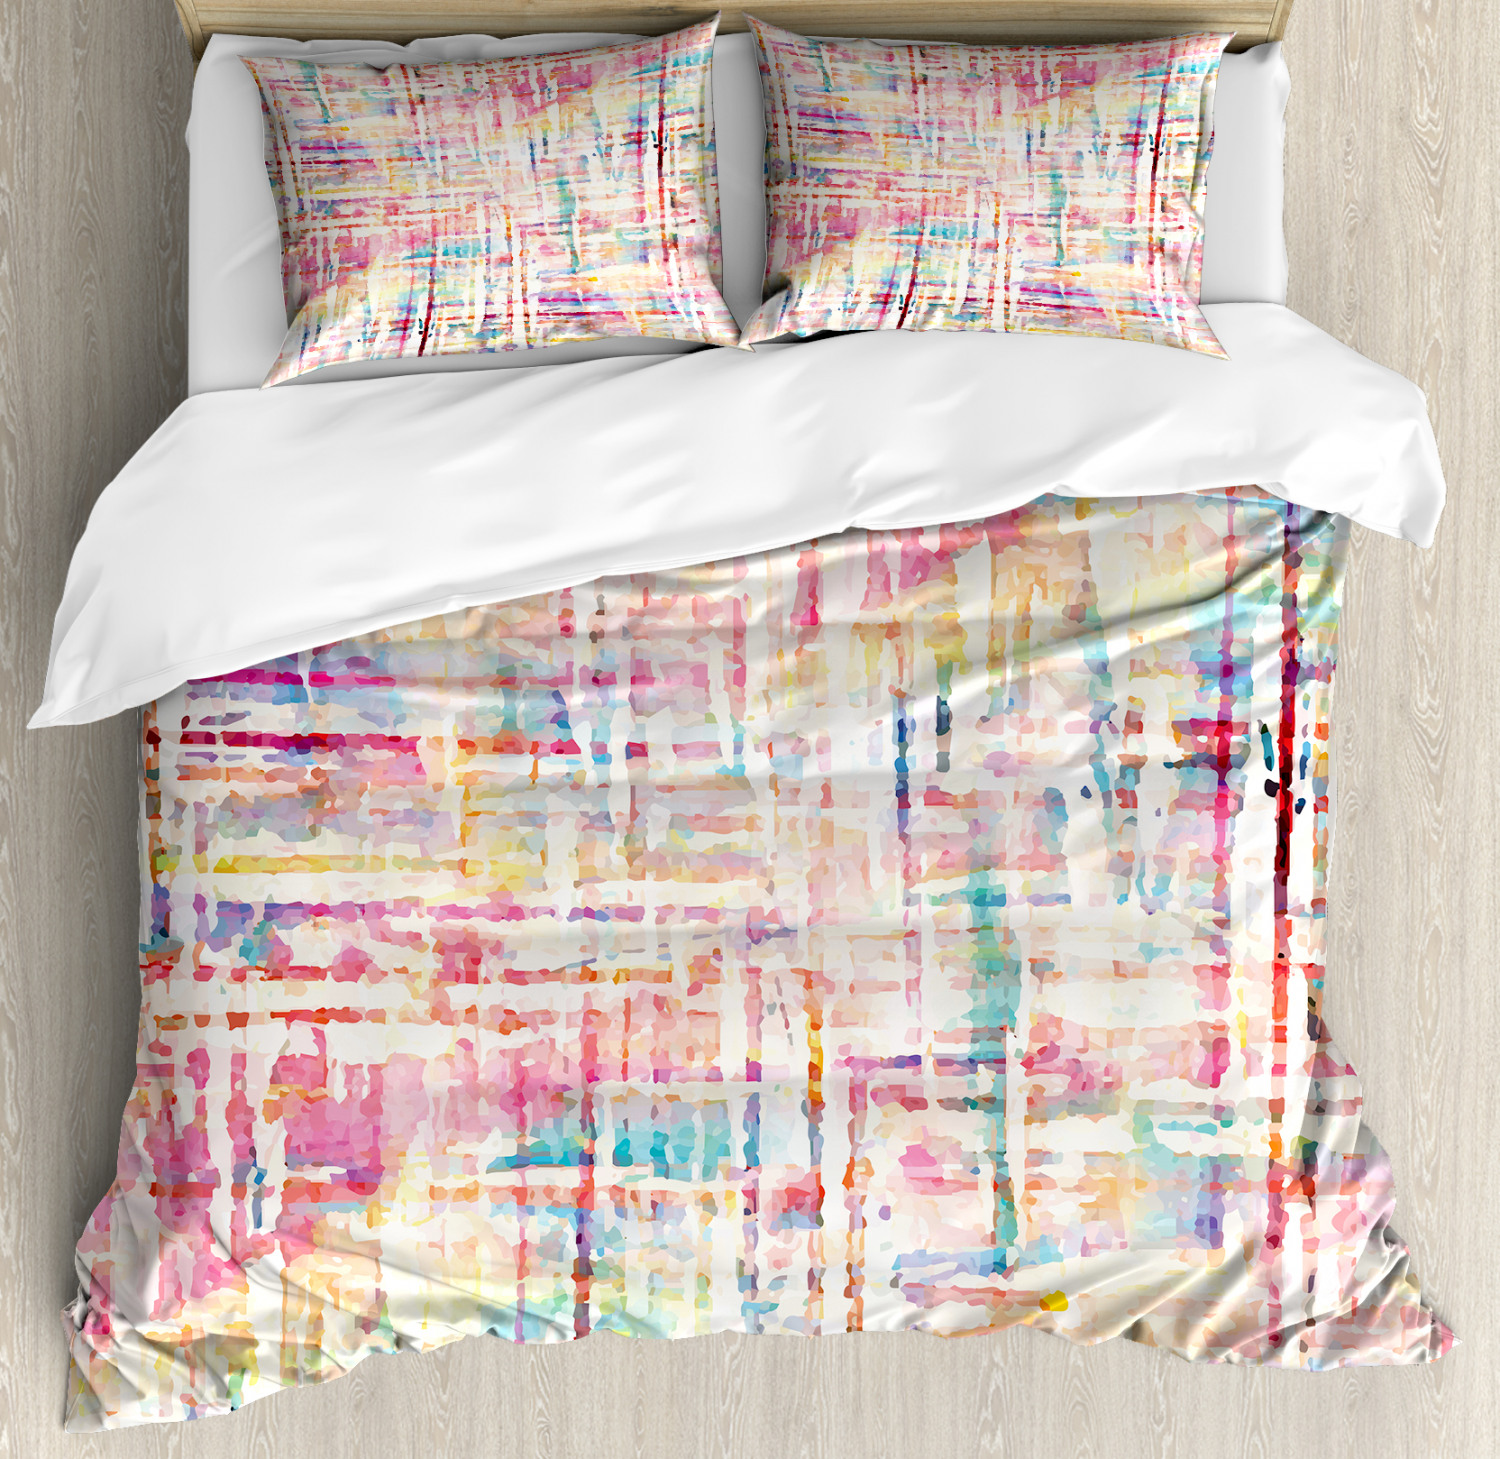 Watercolor Duvet Cover Set with Pillow Shams Scattered colors Art Print